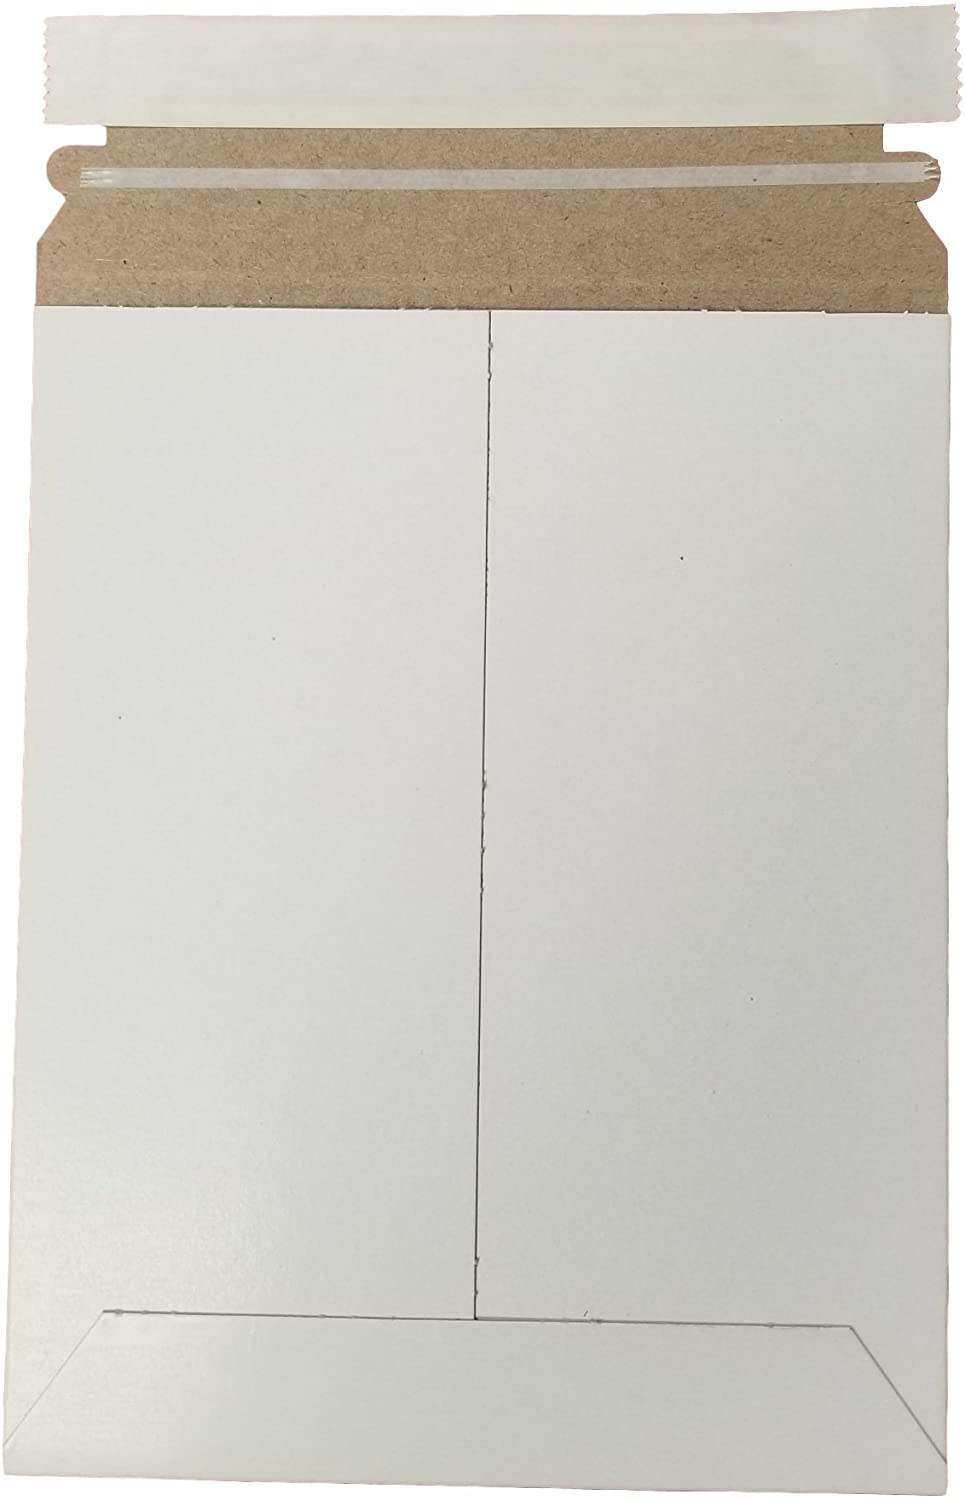 Stay Flat White Mailers -Envelopes with Self-Seal Tape Keep Delicate Items or Papers Safe - Size 6